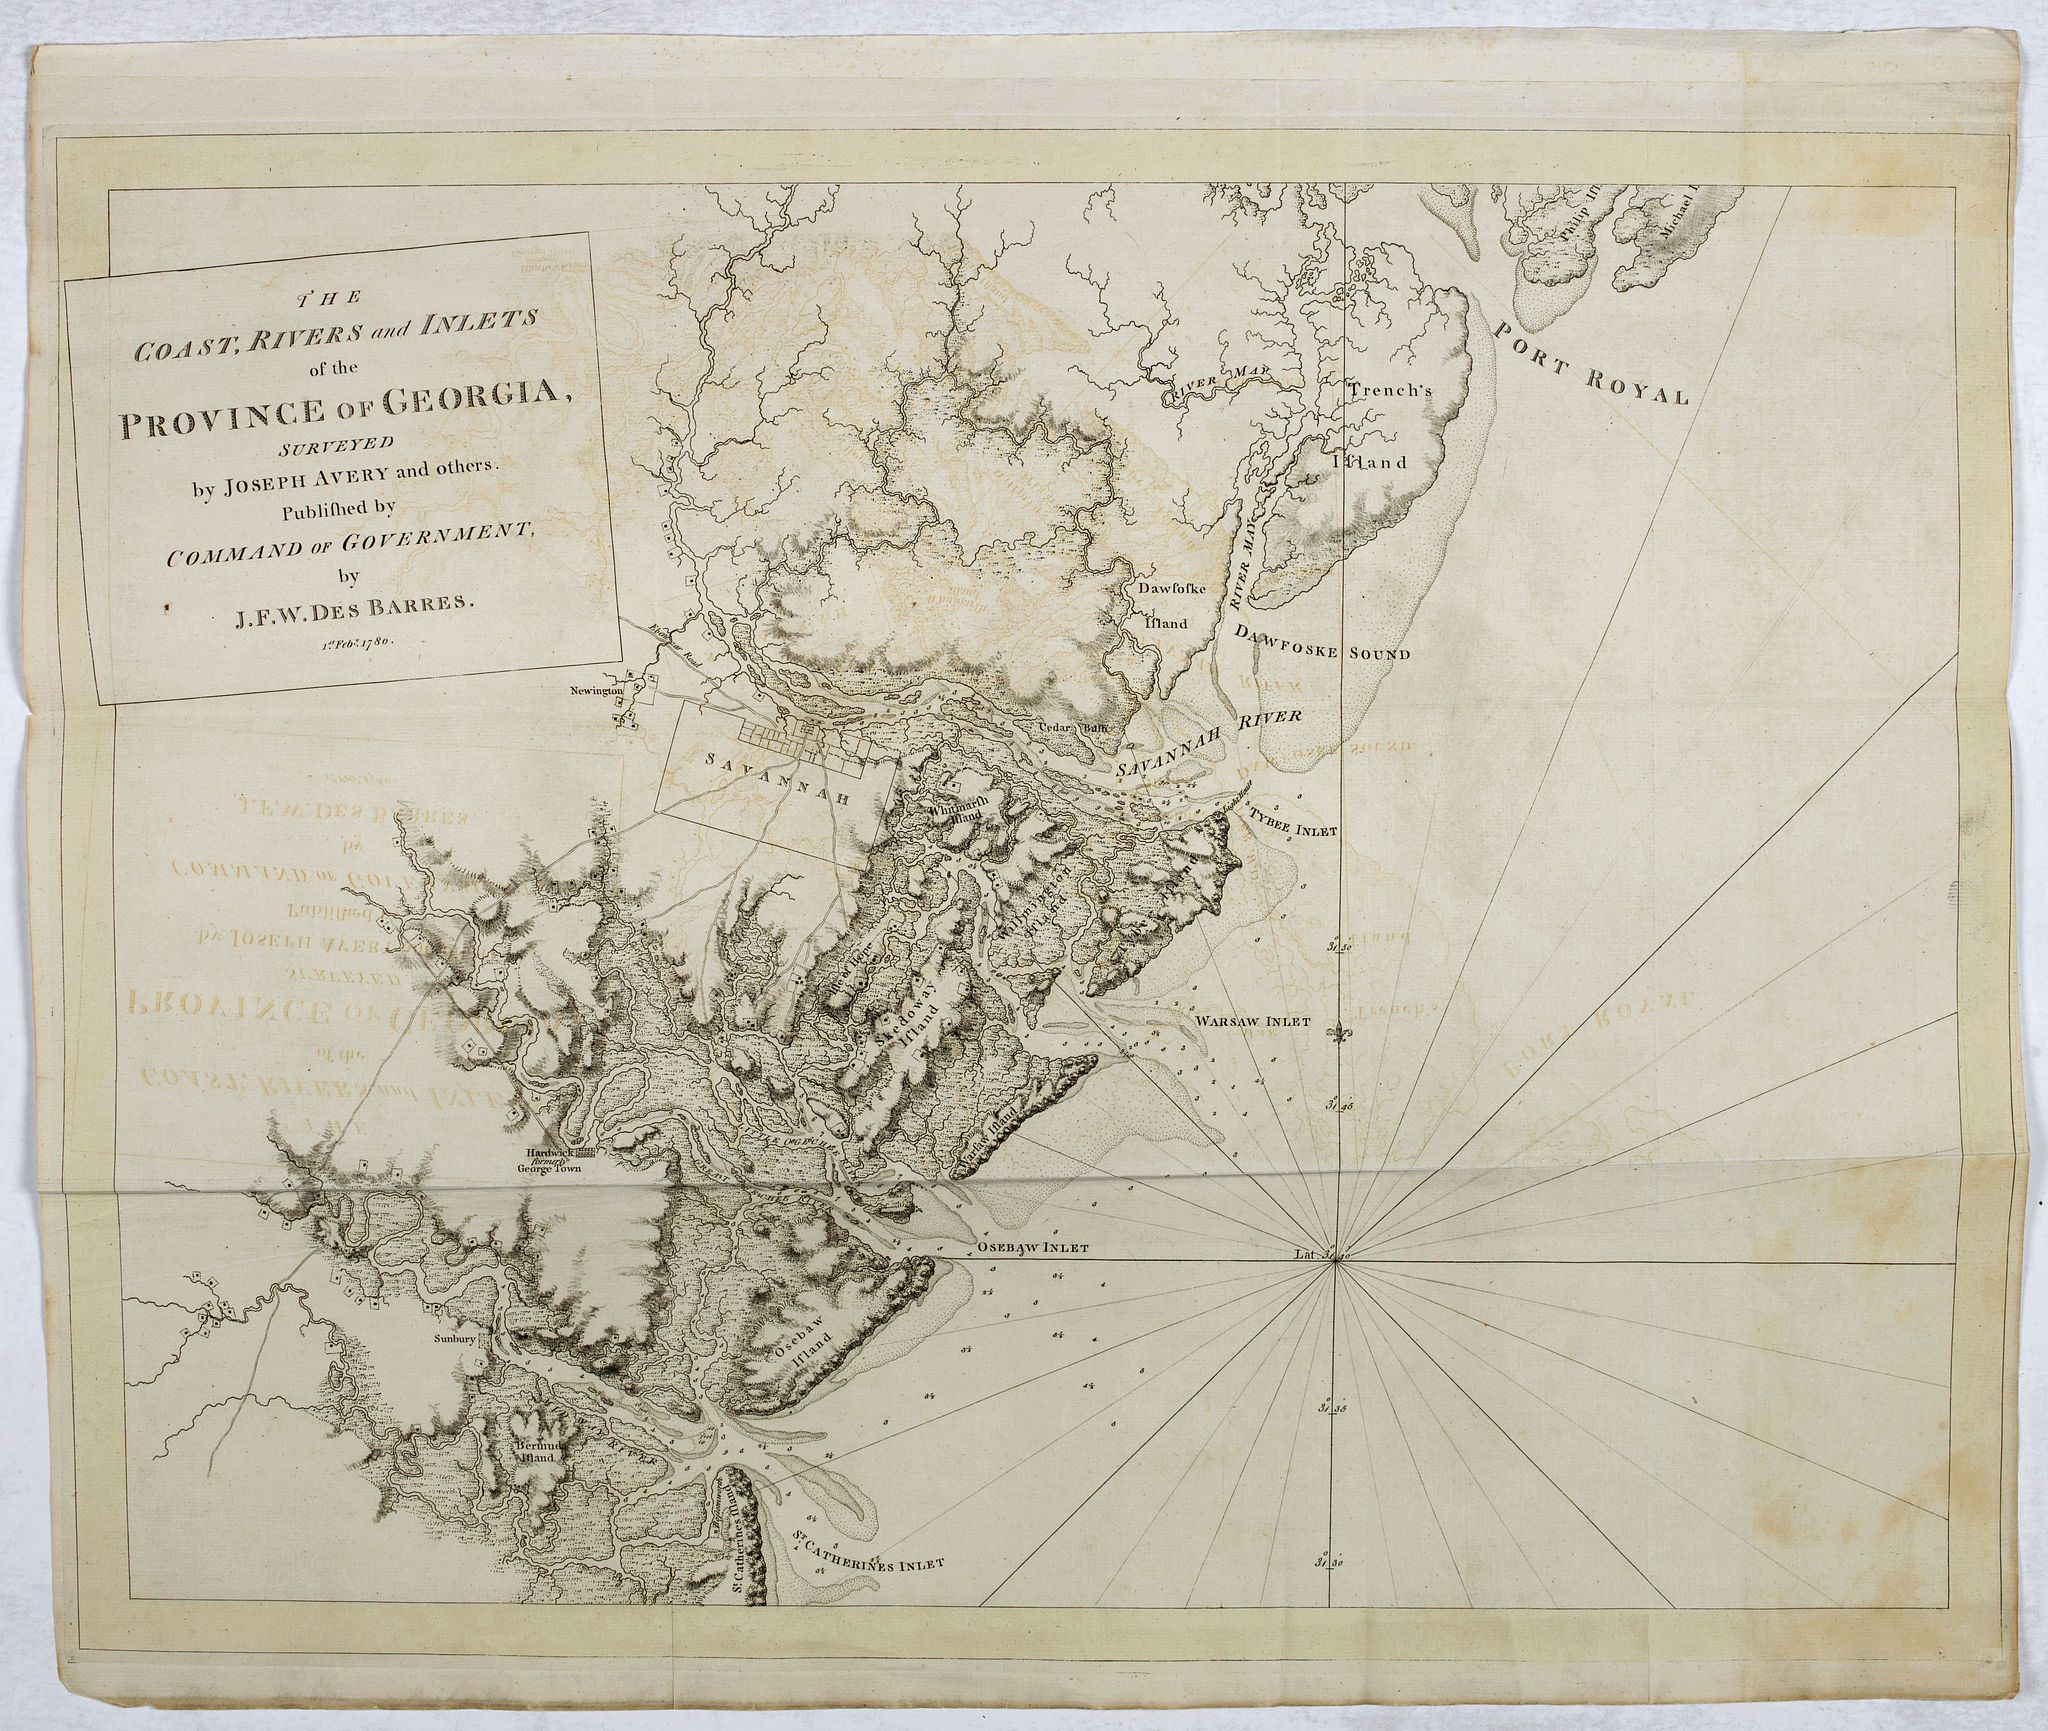 DES BARRES, J.F.W. -  The coast, rivers and inlets of the Province of Georgia surveyed by Joseph Avery and others. . .